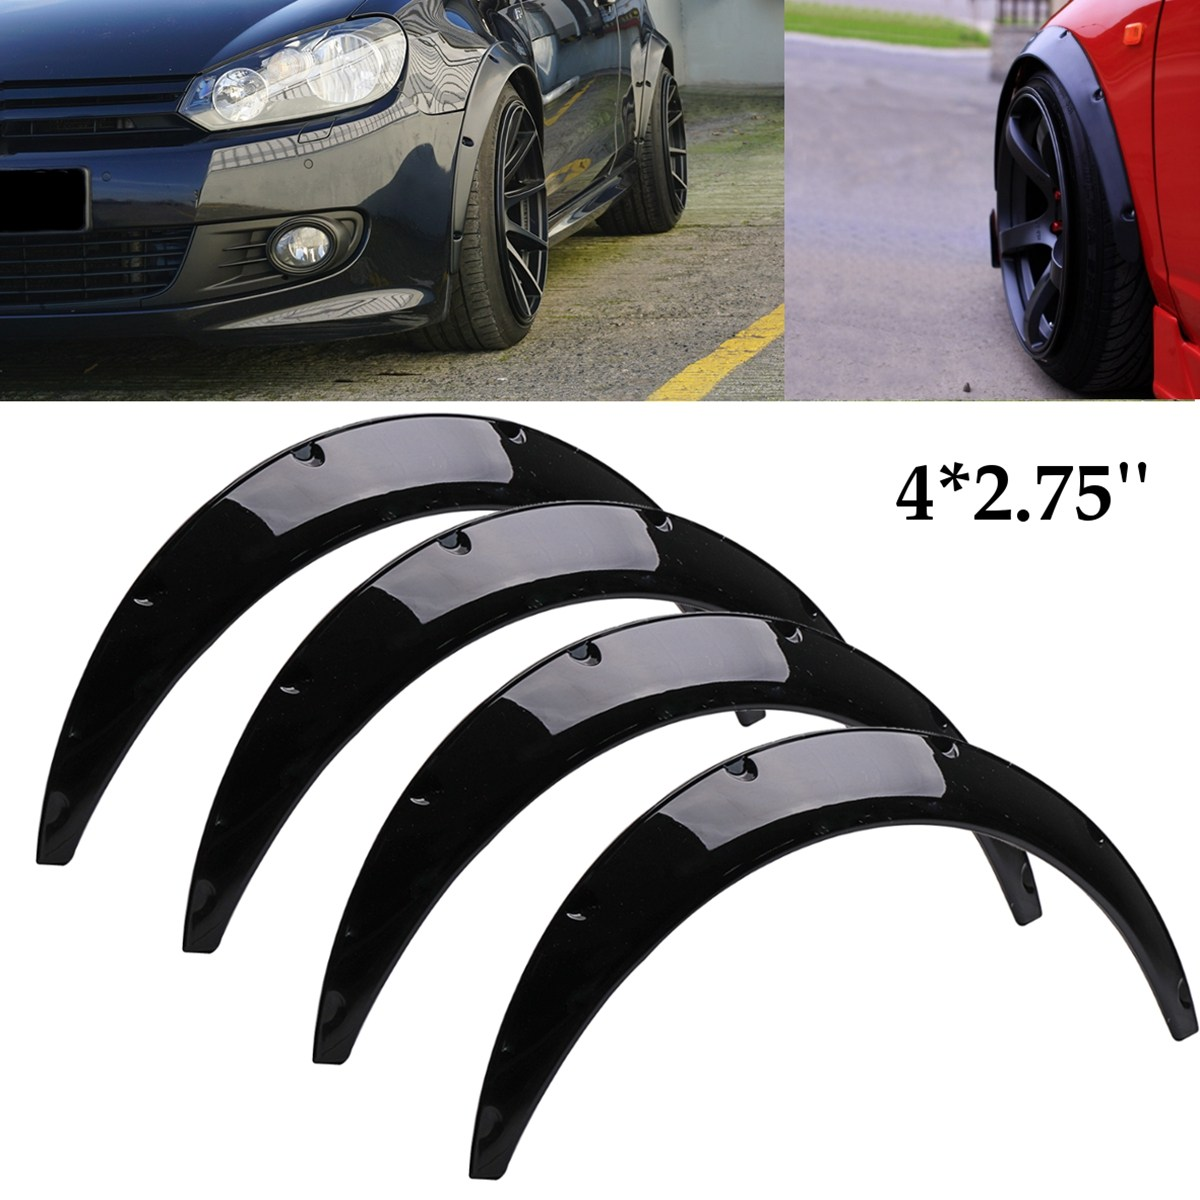 4Pcs 2.75 inch Universal Gloss Black Flexible Car Body For Fender Flares Extension Wide Wheel Arches helo he866 gloss black wheel with chrome accents 20x8 5 6x135mm